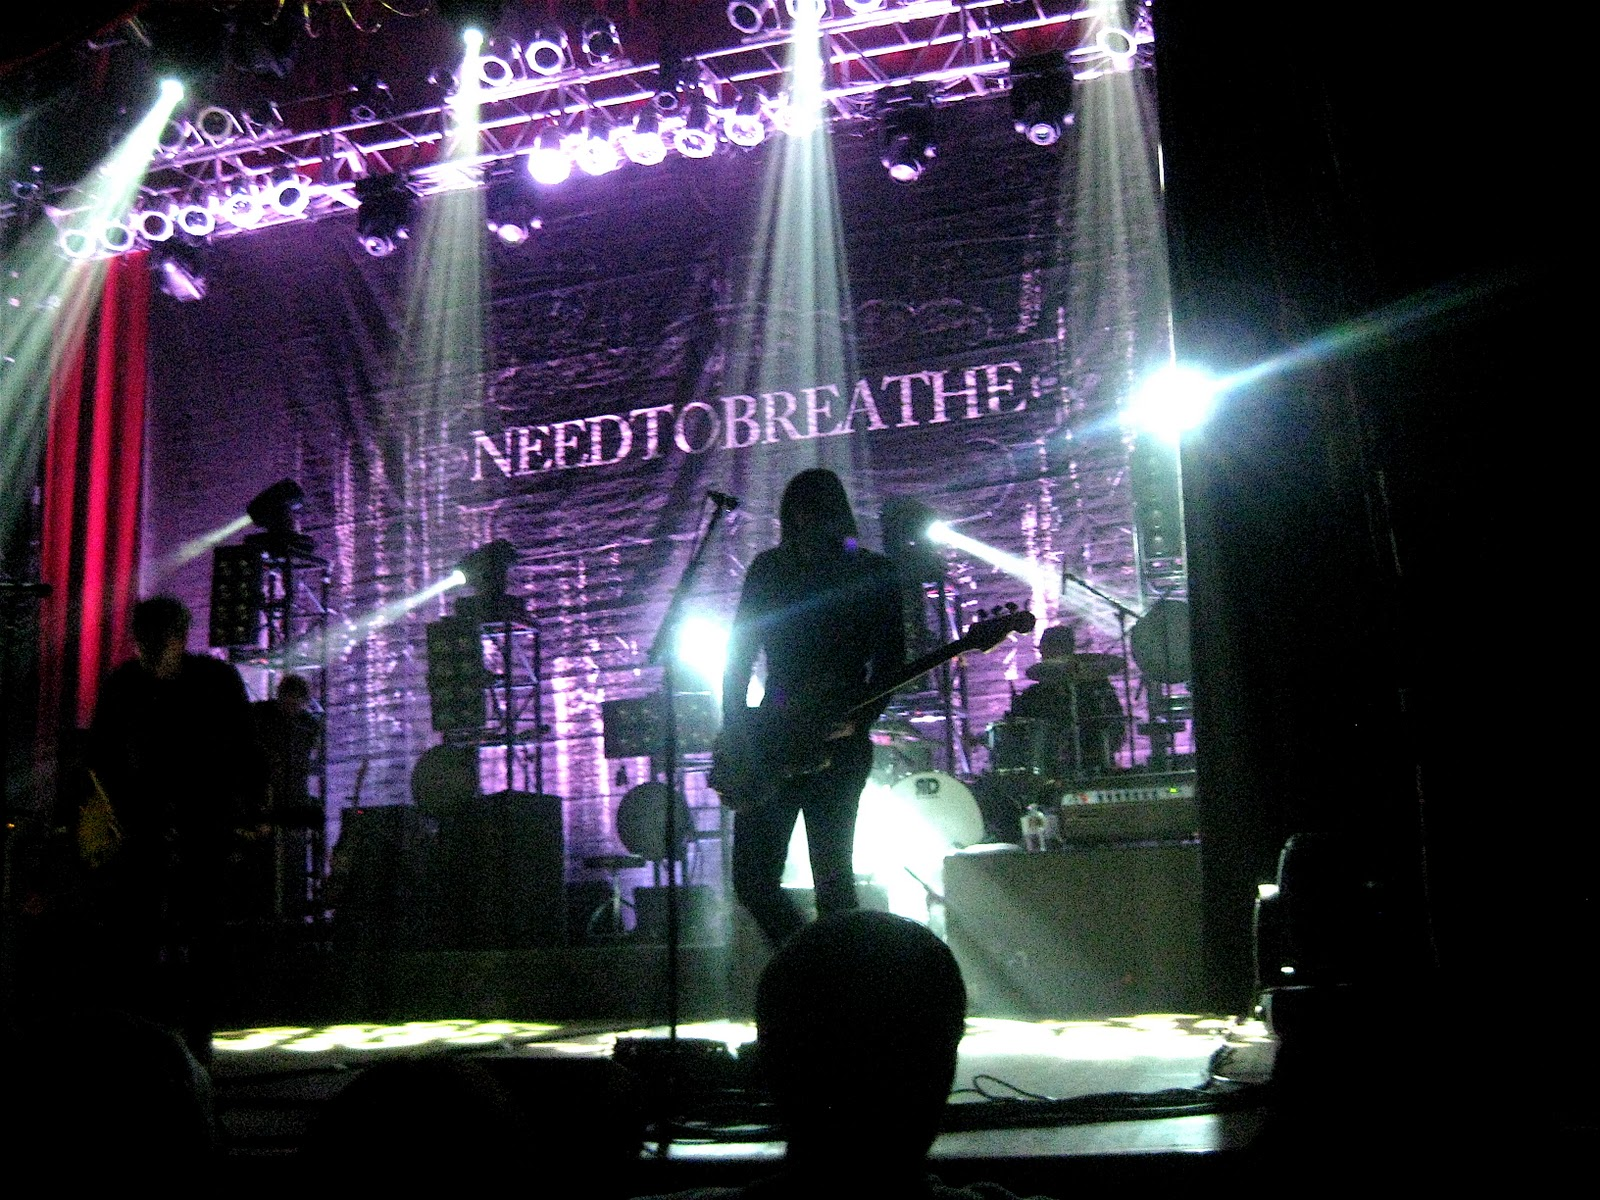 Tour Needtobreathe Dates 2011